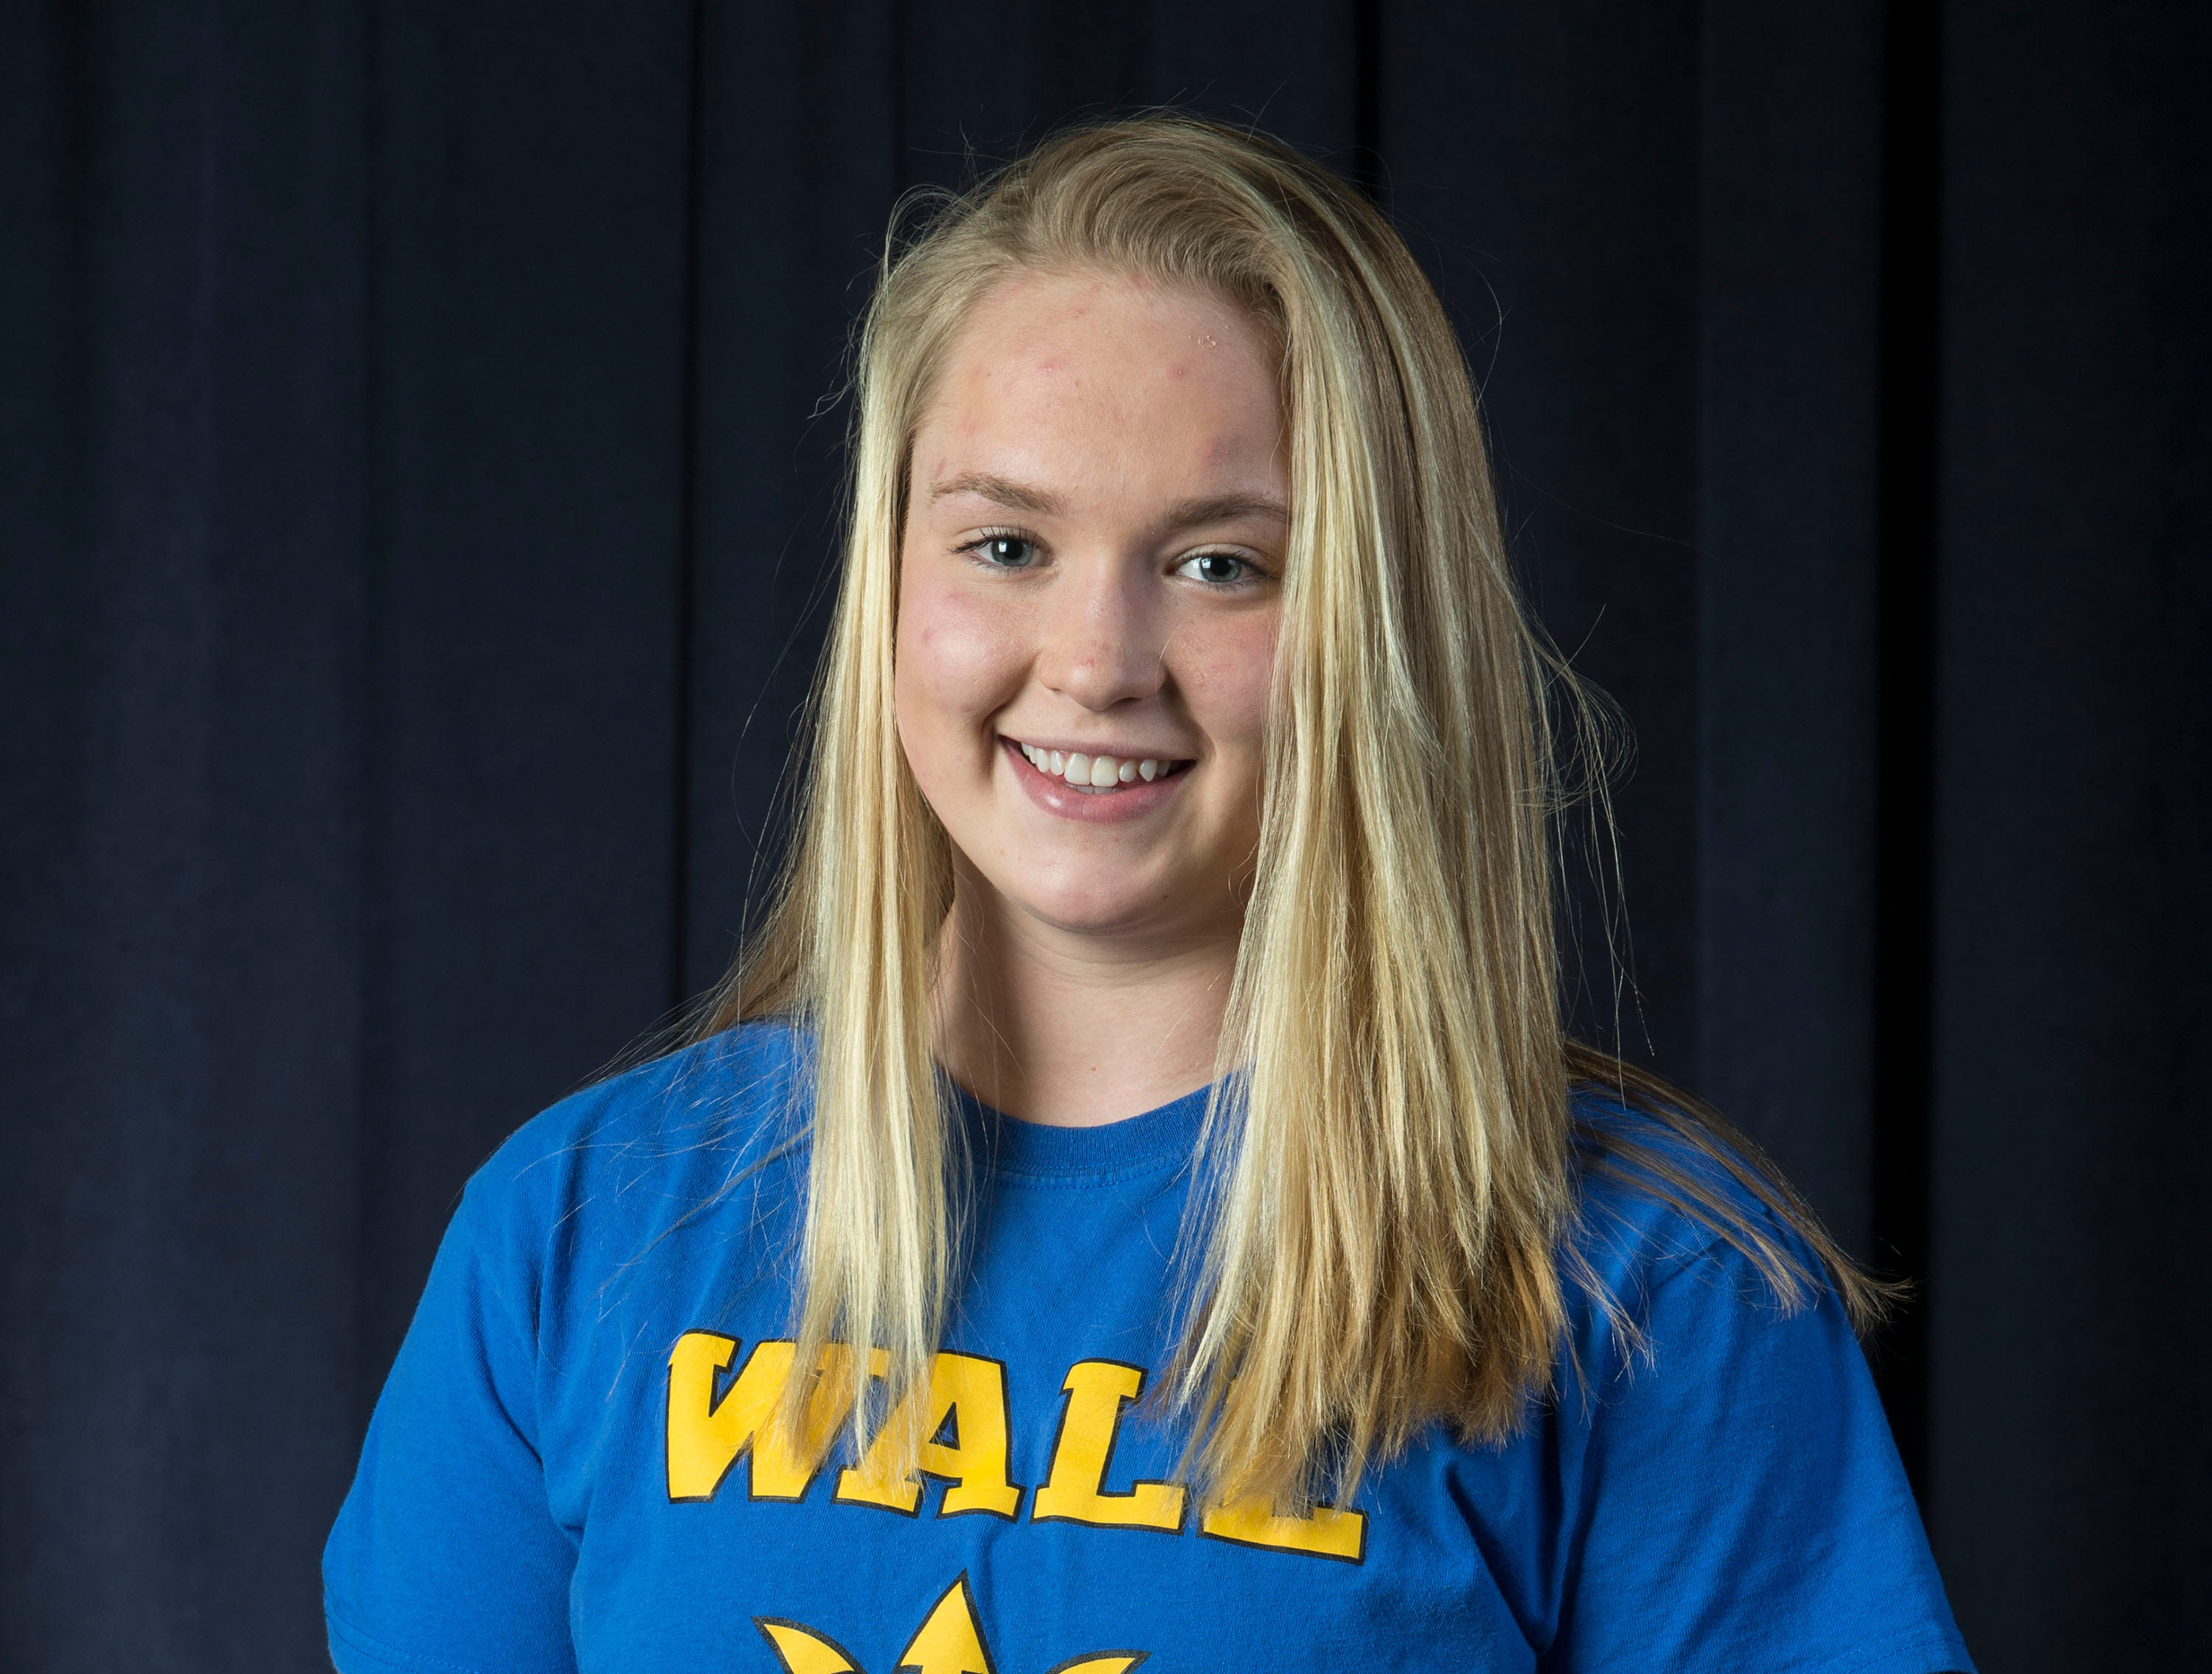 The 2019 All-Shore Girls Swim Team- Grace Kayal of Wall